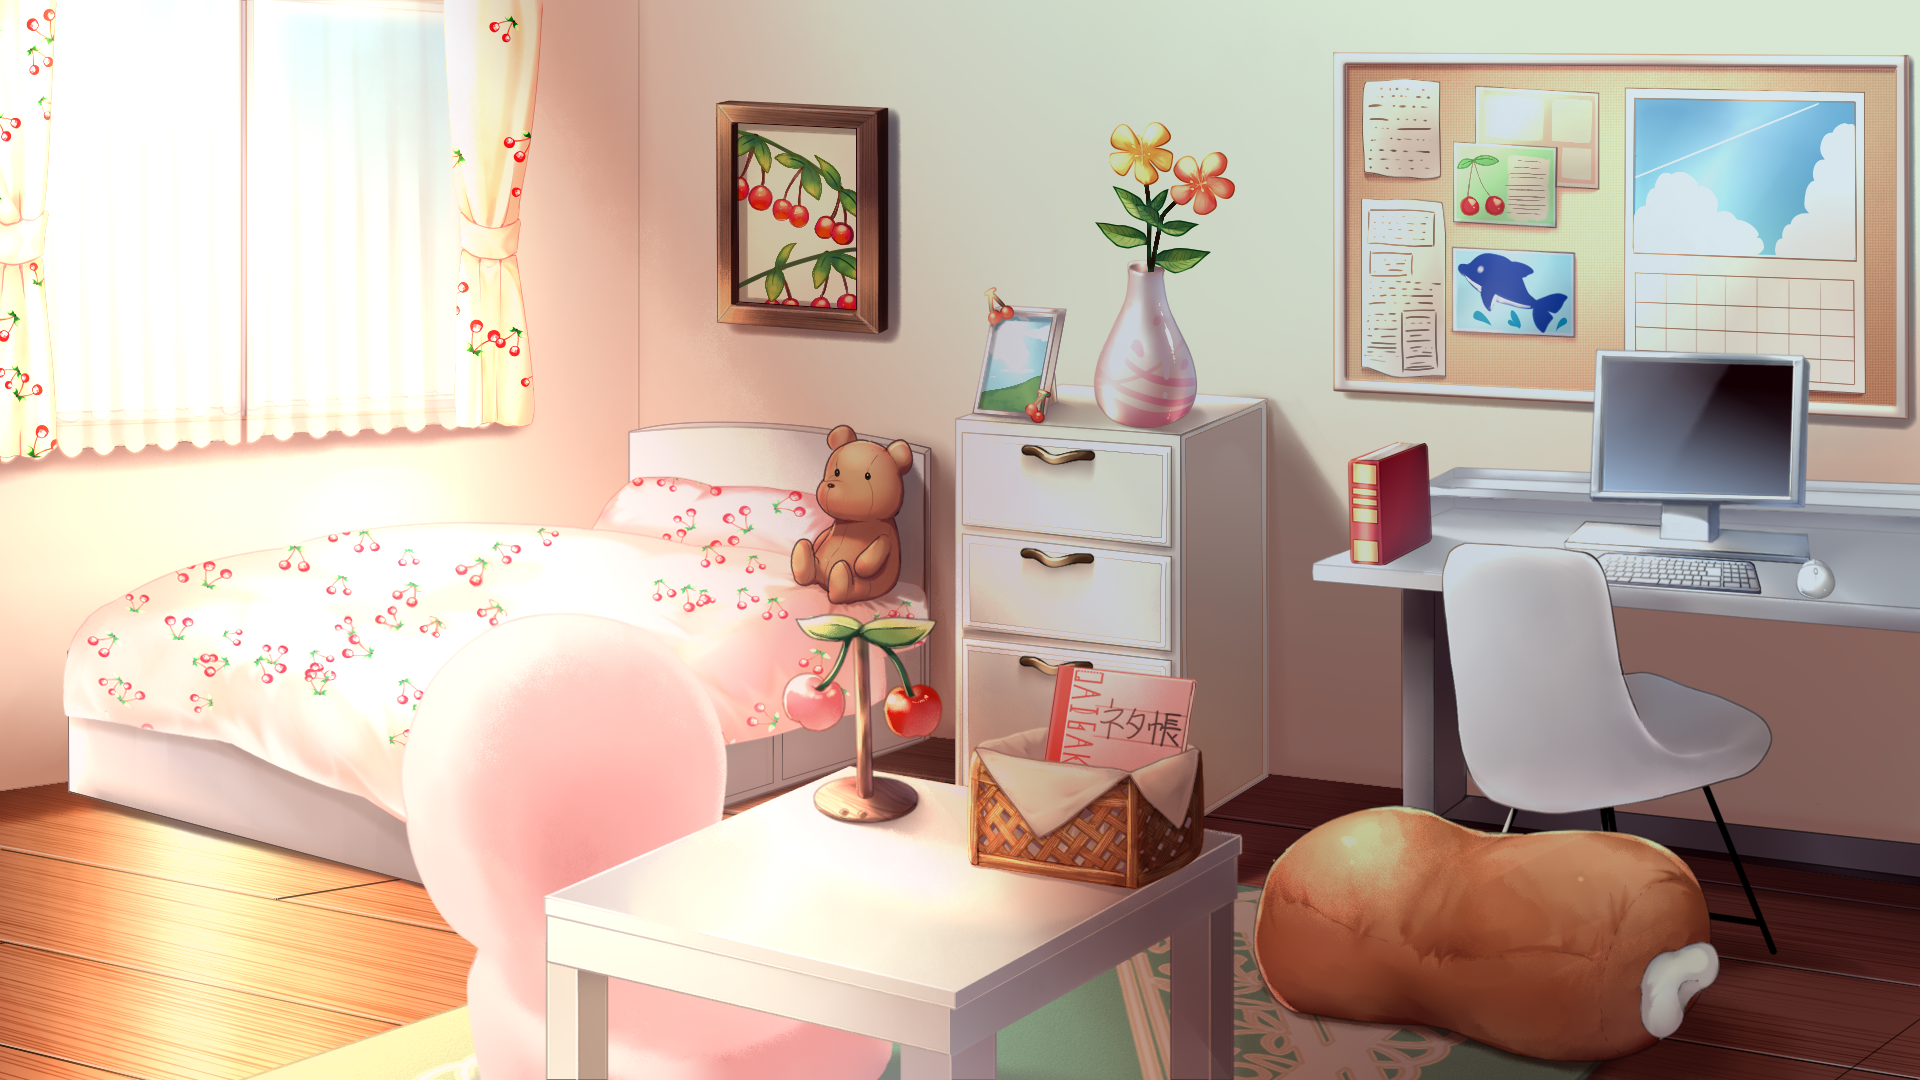 Anime Bedroom Wallpapers Top Free Anime Bedroom Backgrounds Wallpaperaccess